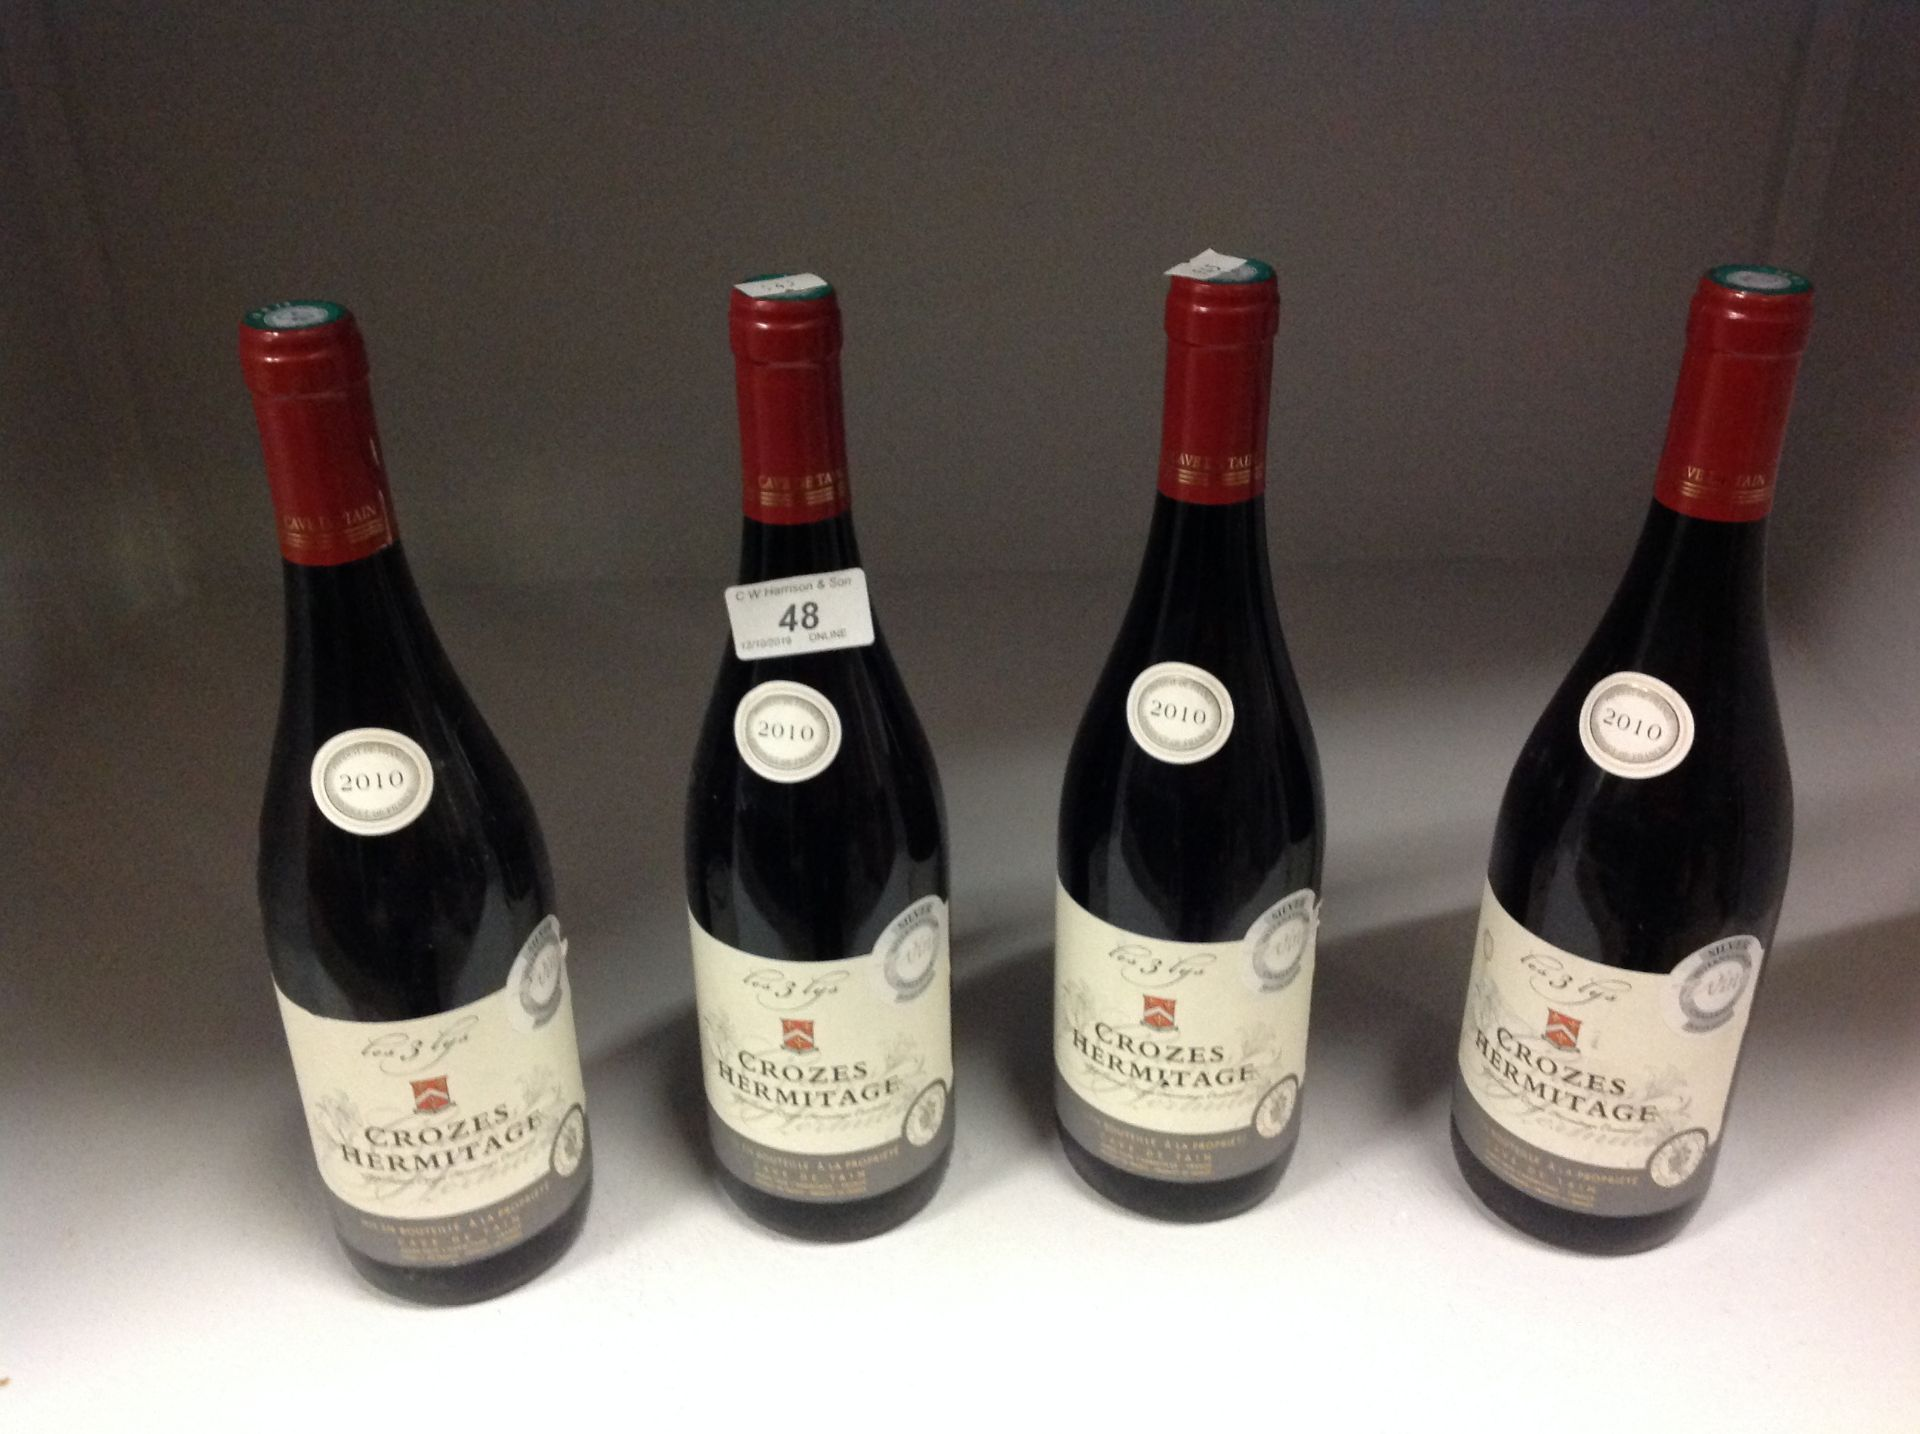 Lot 48 - 4 x 750ml bottles Crozes Hermitage - 201